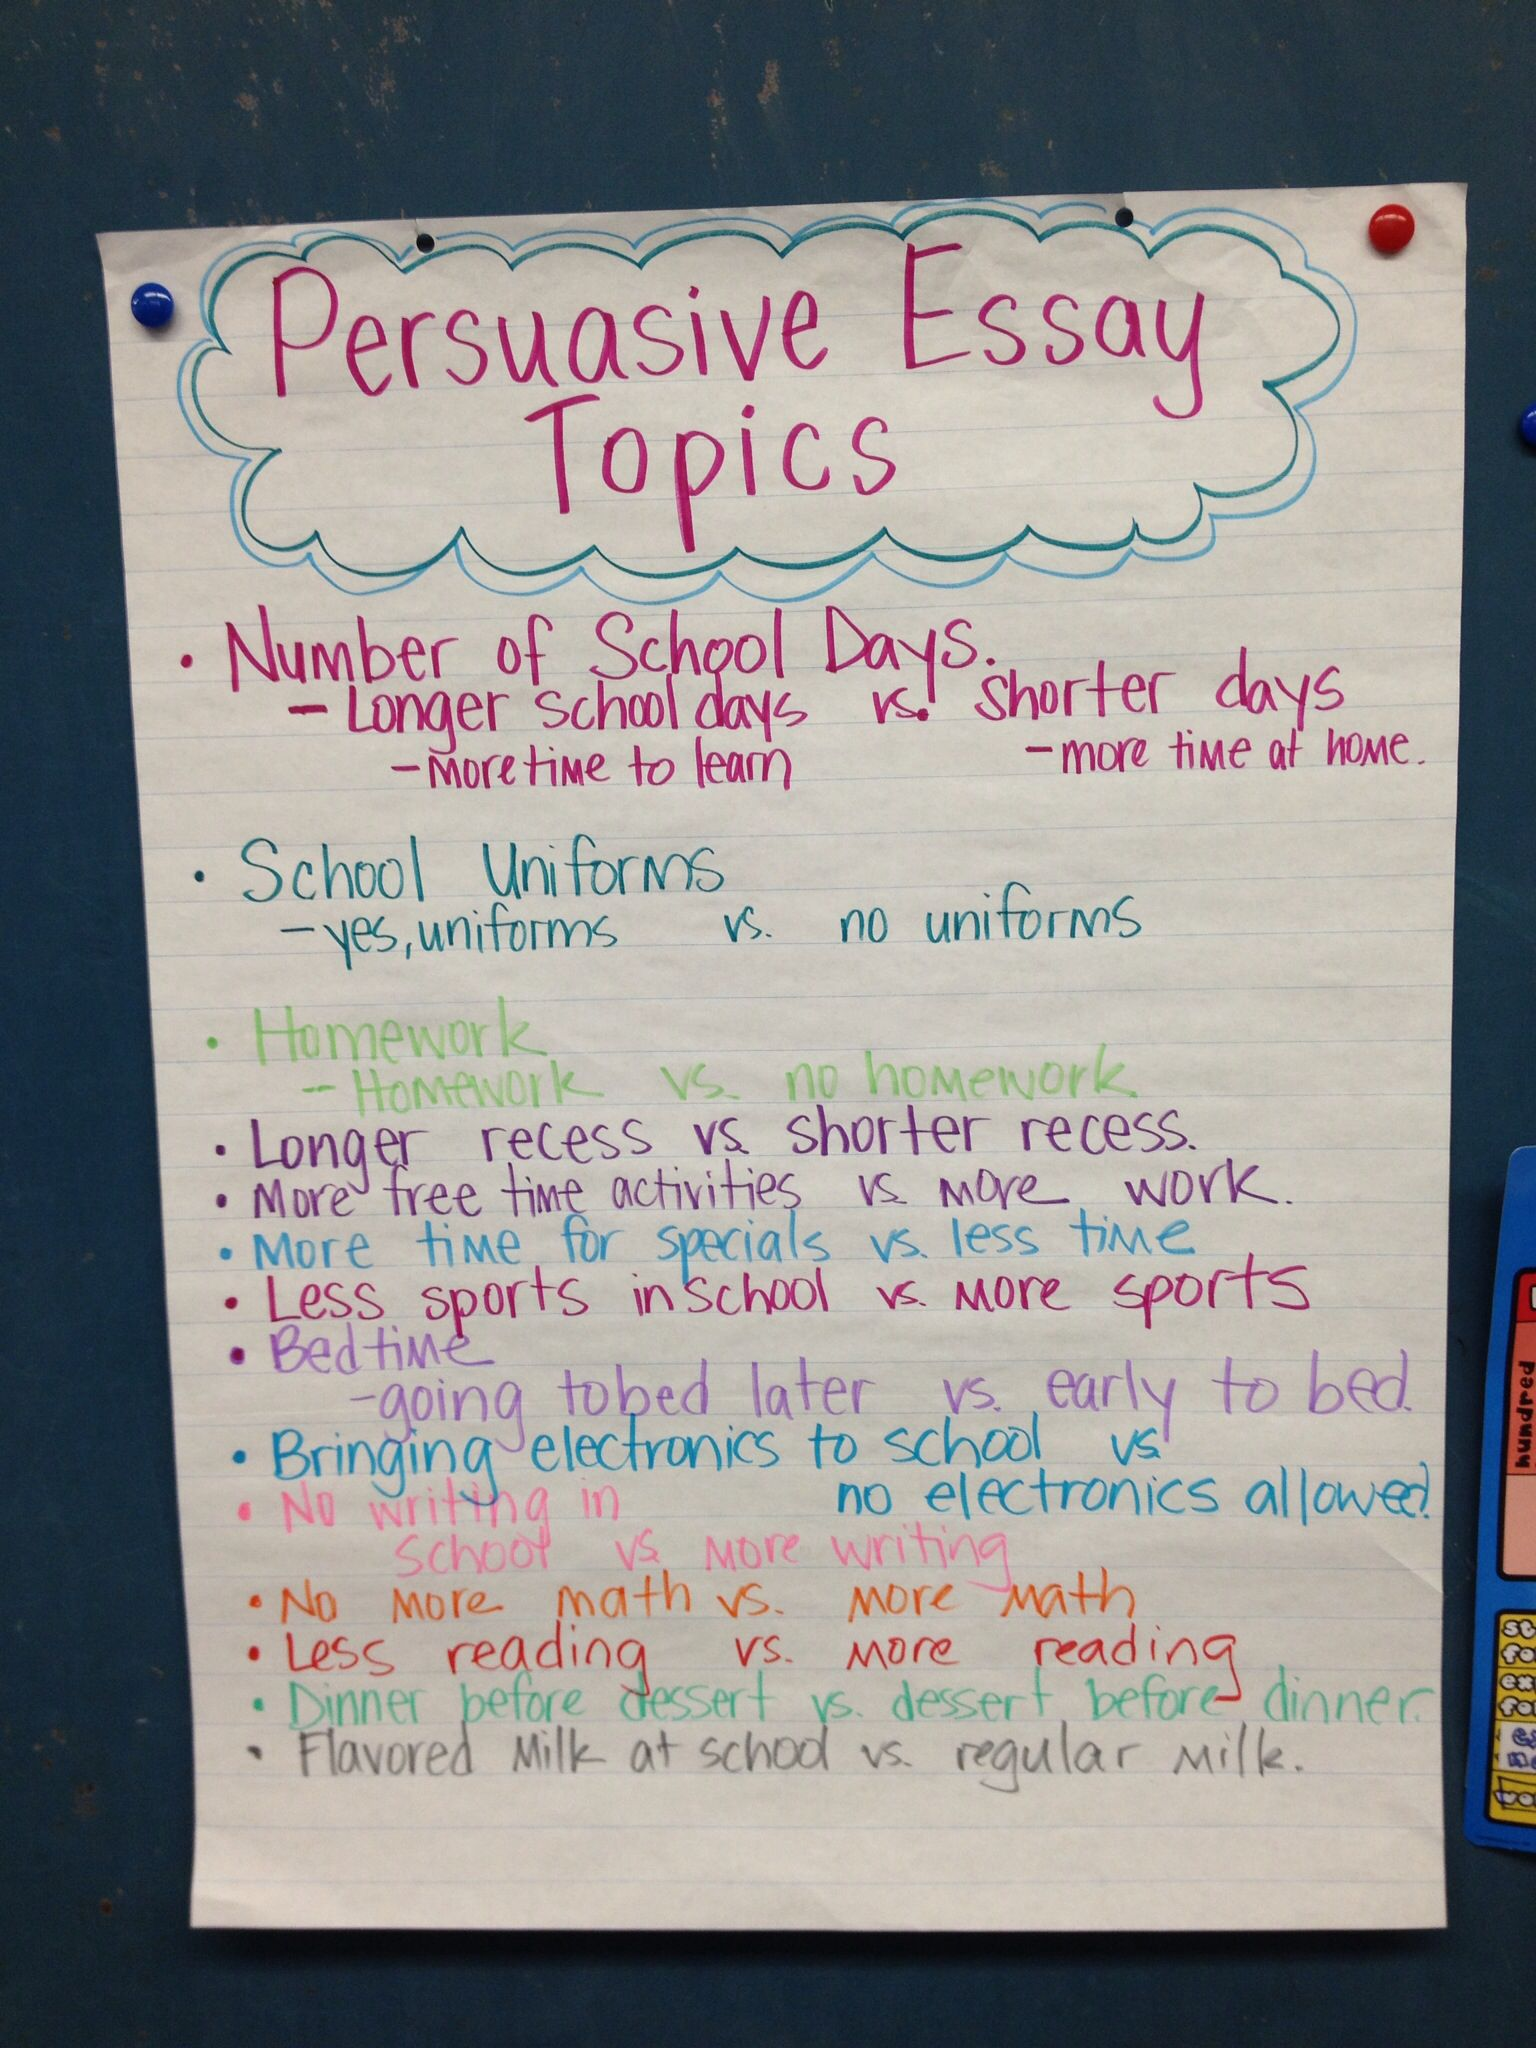 Top topics for persuasive essays